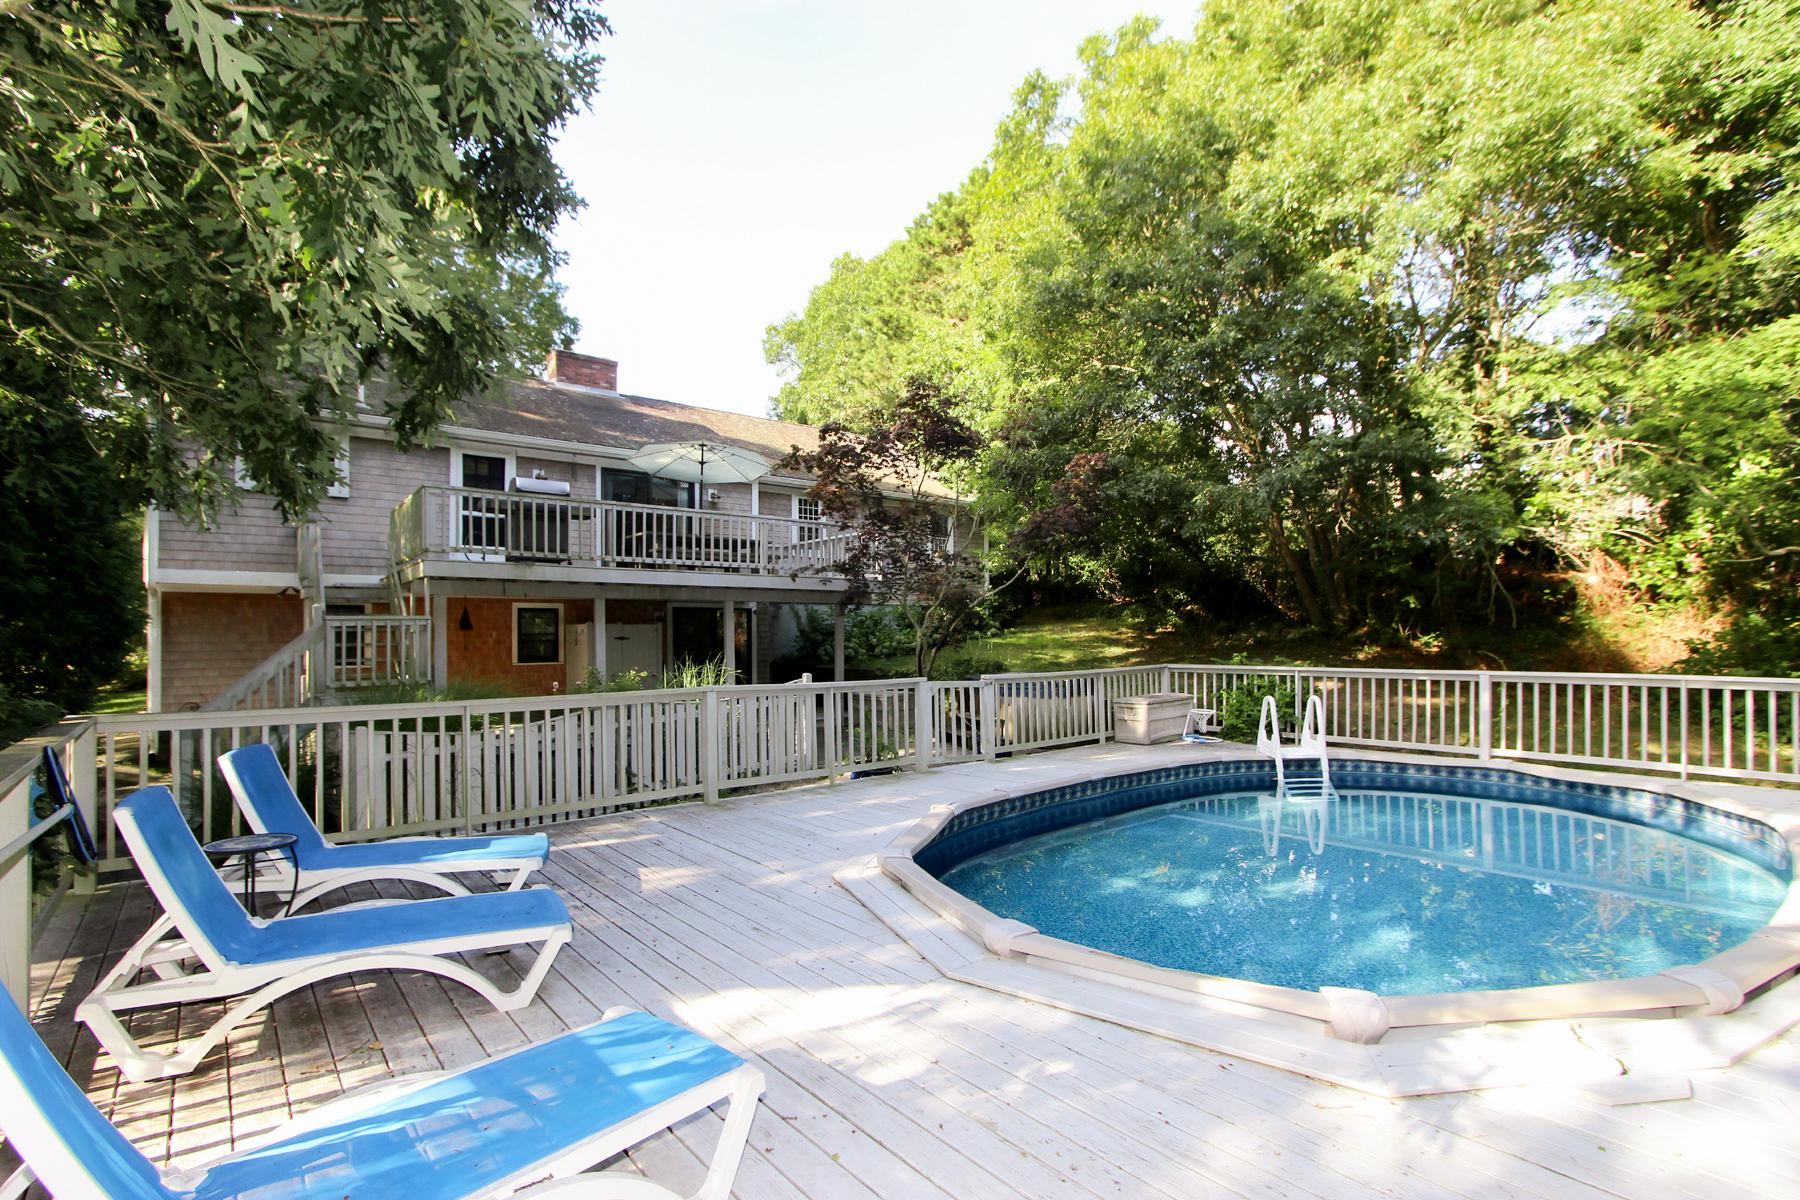 Charming, Comfy Home with Pool and Hot Tub; Near Beach